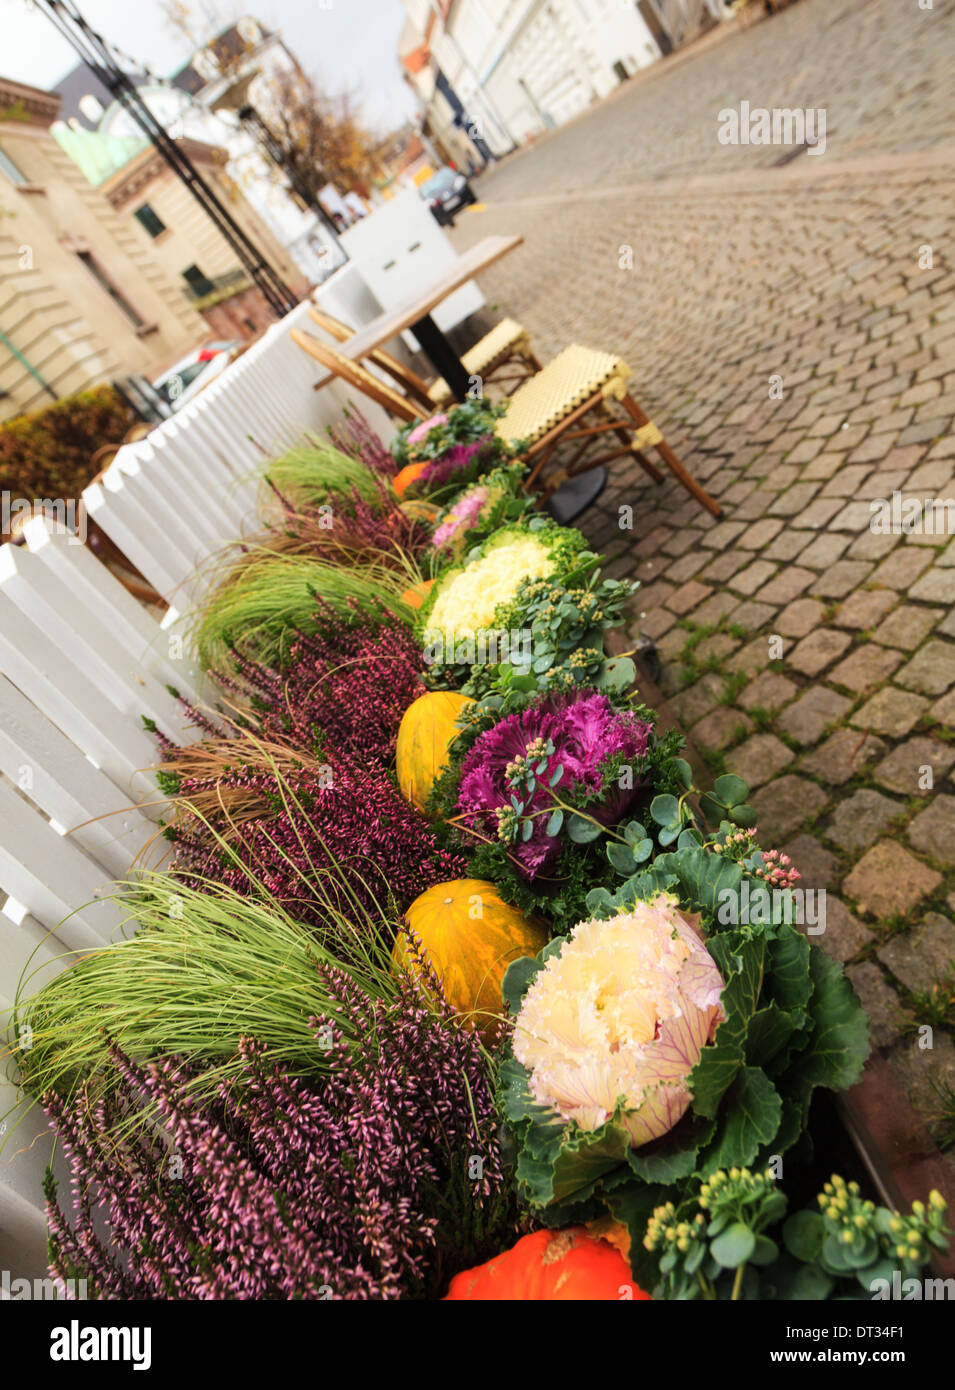 Angled shot of fruit and vegetable display on a cobbled street in the Danish city of Aarhus or Arhus - Stock Image